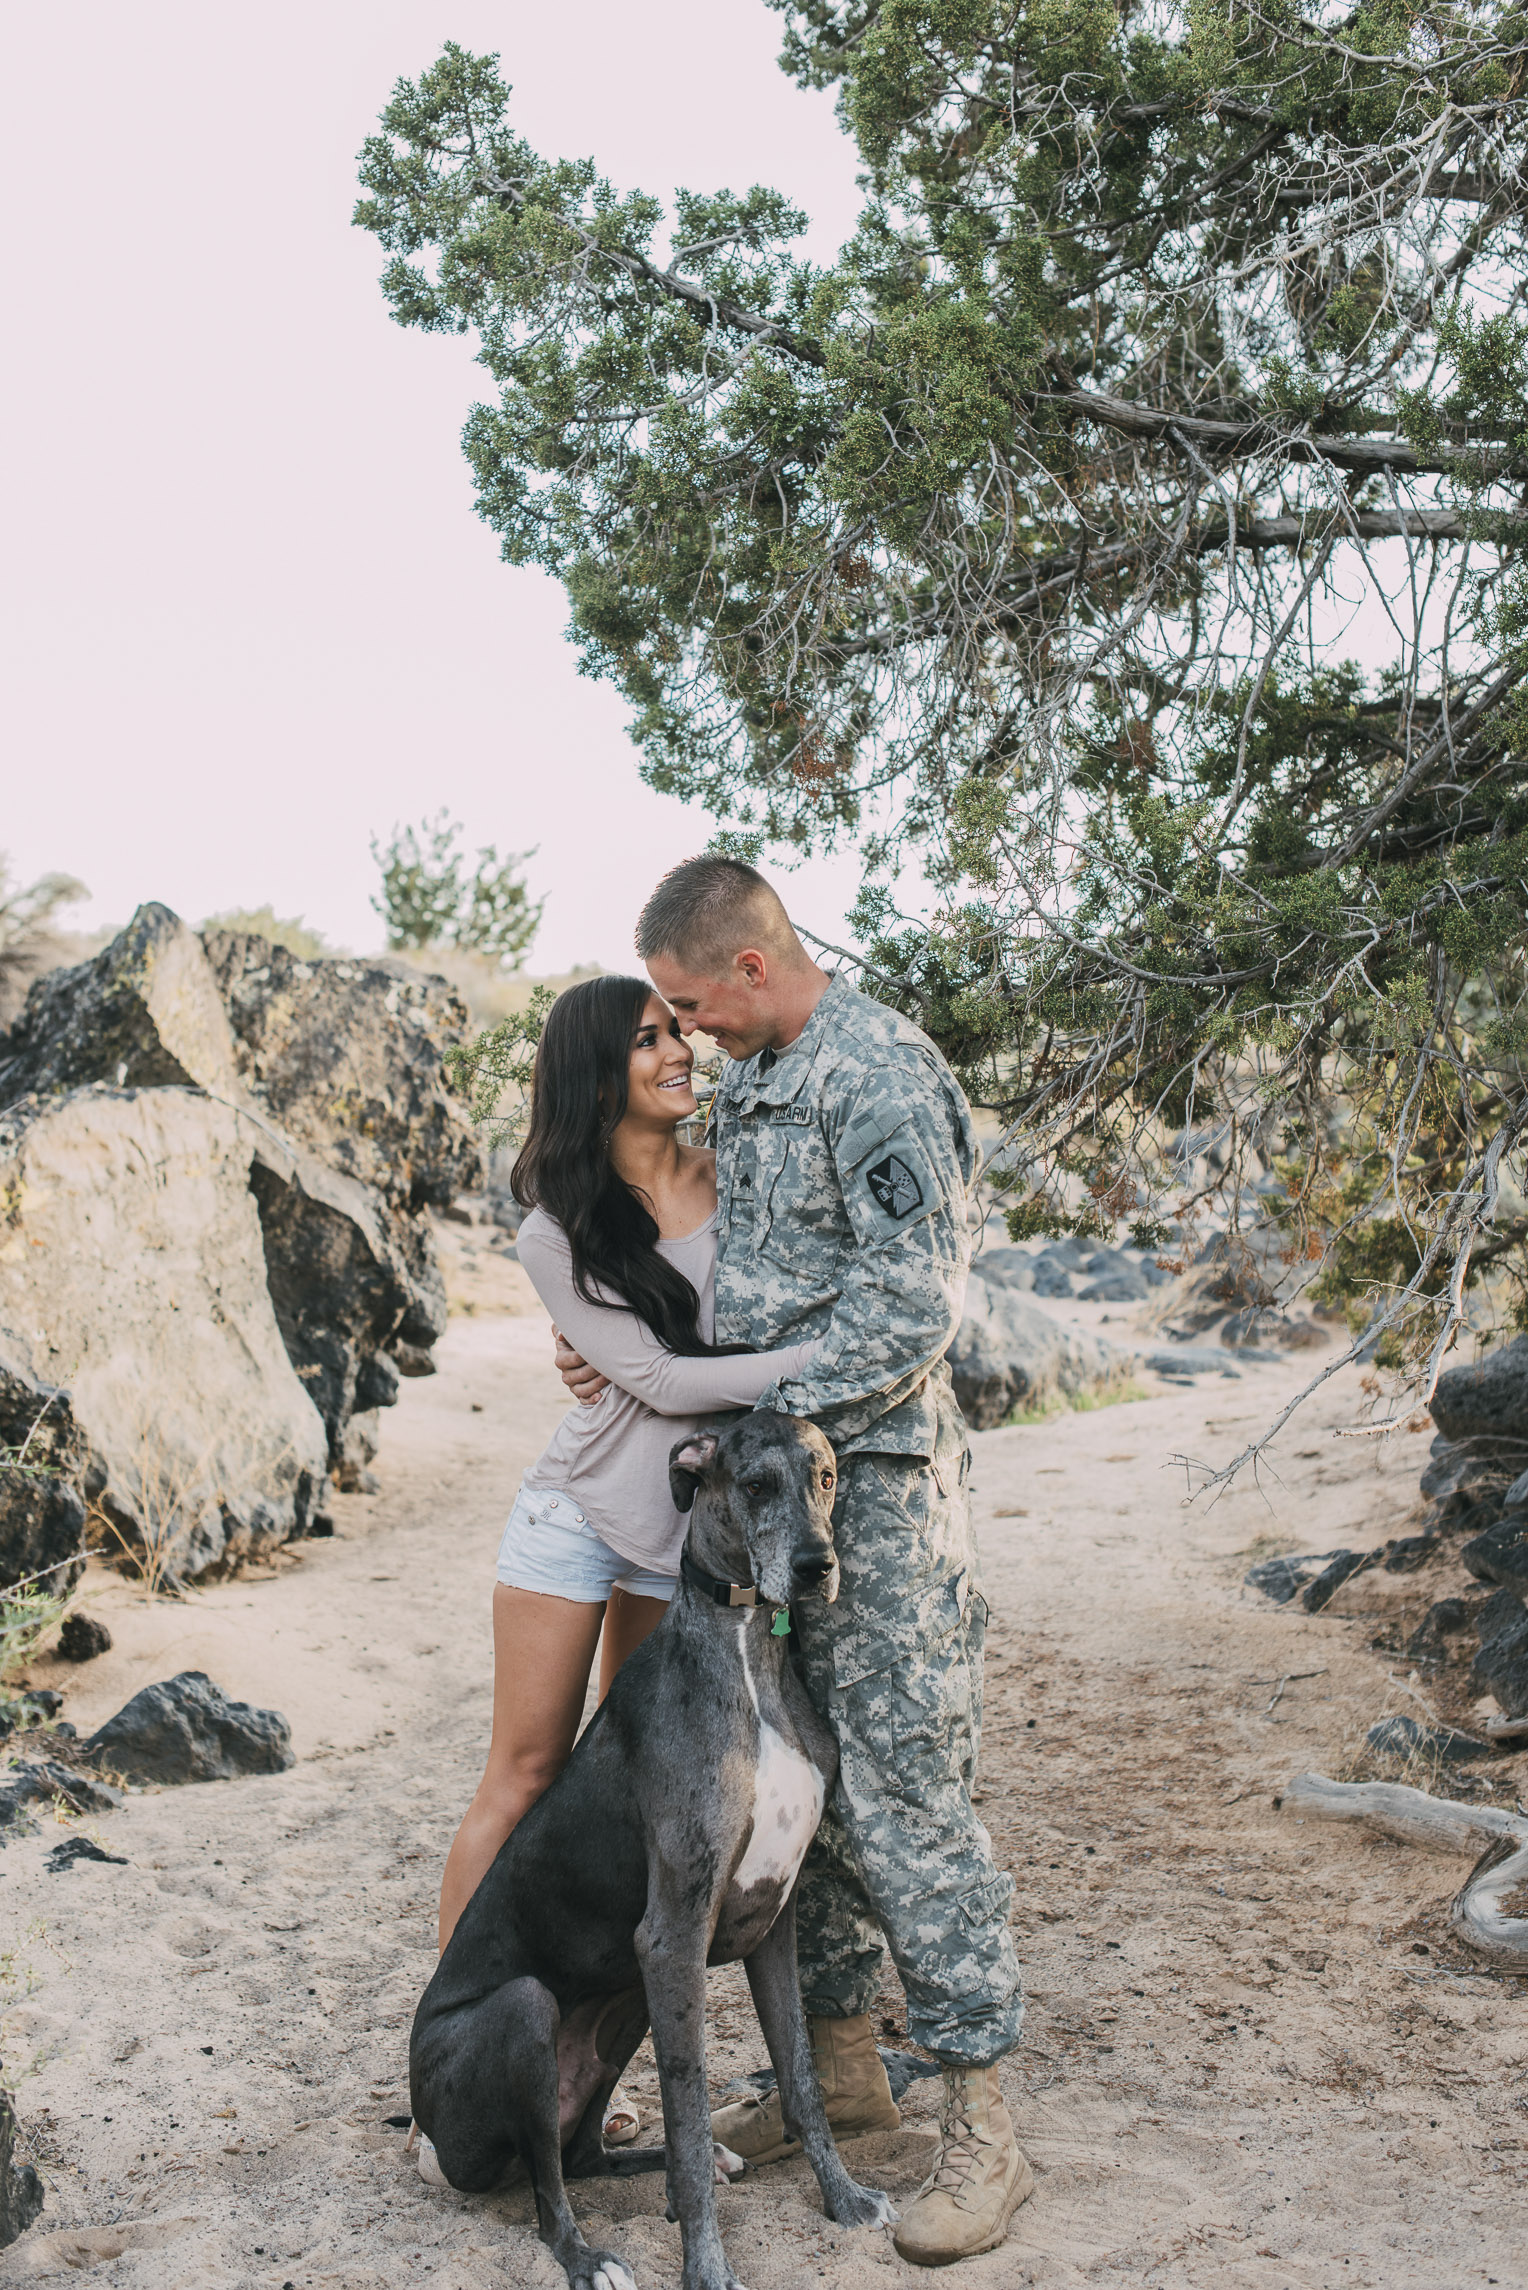 050416KELSEY & RUSTIN ENGAGEMENTS - ST. GEORGE LAS VEGAS PHOTOGRAPHER - DEBI RAE PHOTOGRAPHY-24.jpg